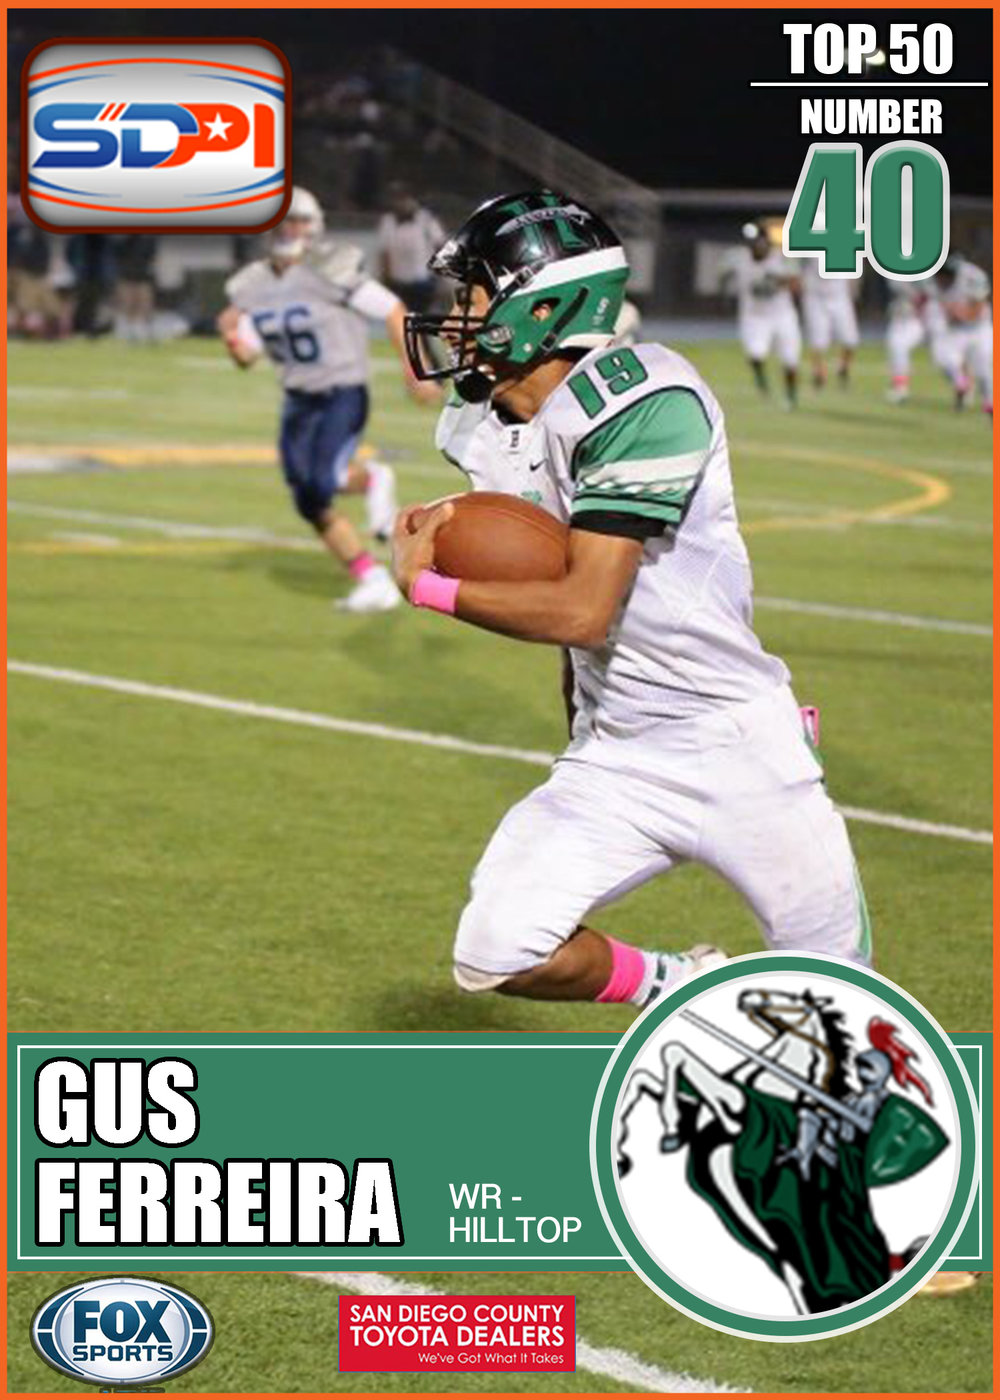 - One of the hidden gems of San Diego's South Bay Ferreira is as explosive as he is elusive. He totaled 1645 receiving yards and 15 TD's all while getting double teamed on a majority of plays. With a new quarterback and beefed up o-line this should be a huge senior season for the Lancer.Click here to see his highlights.